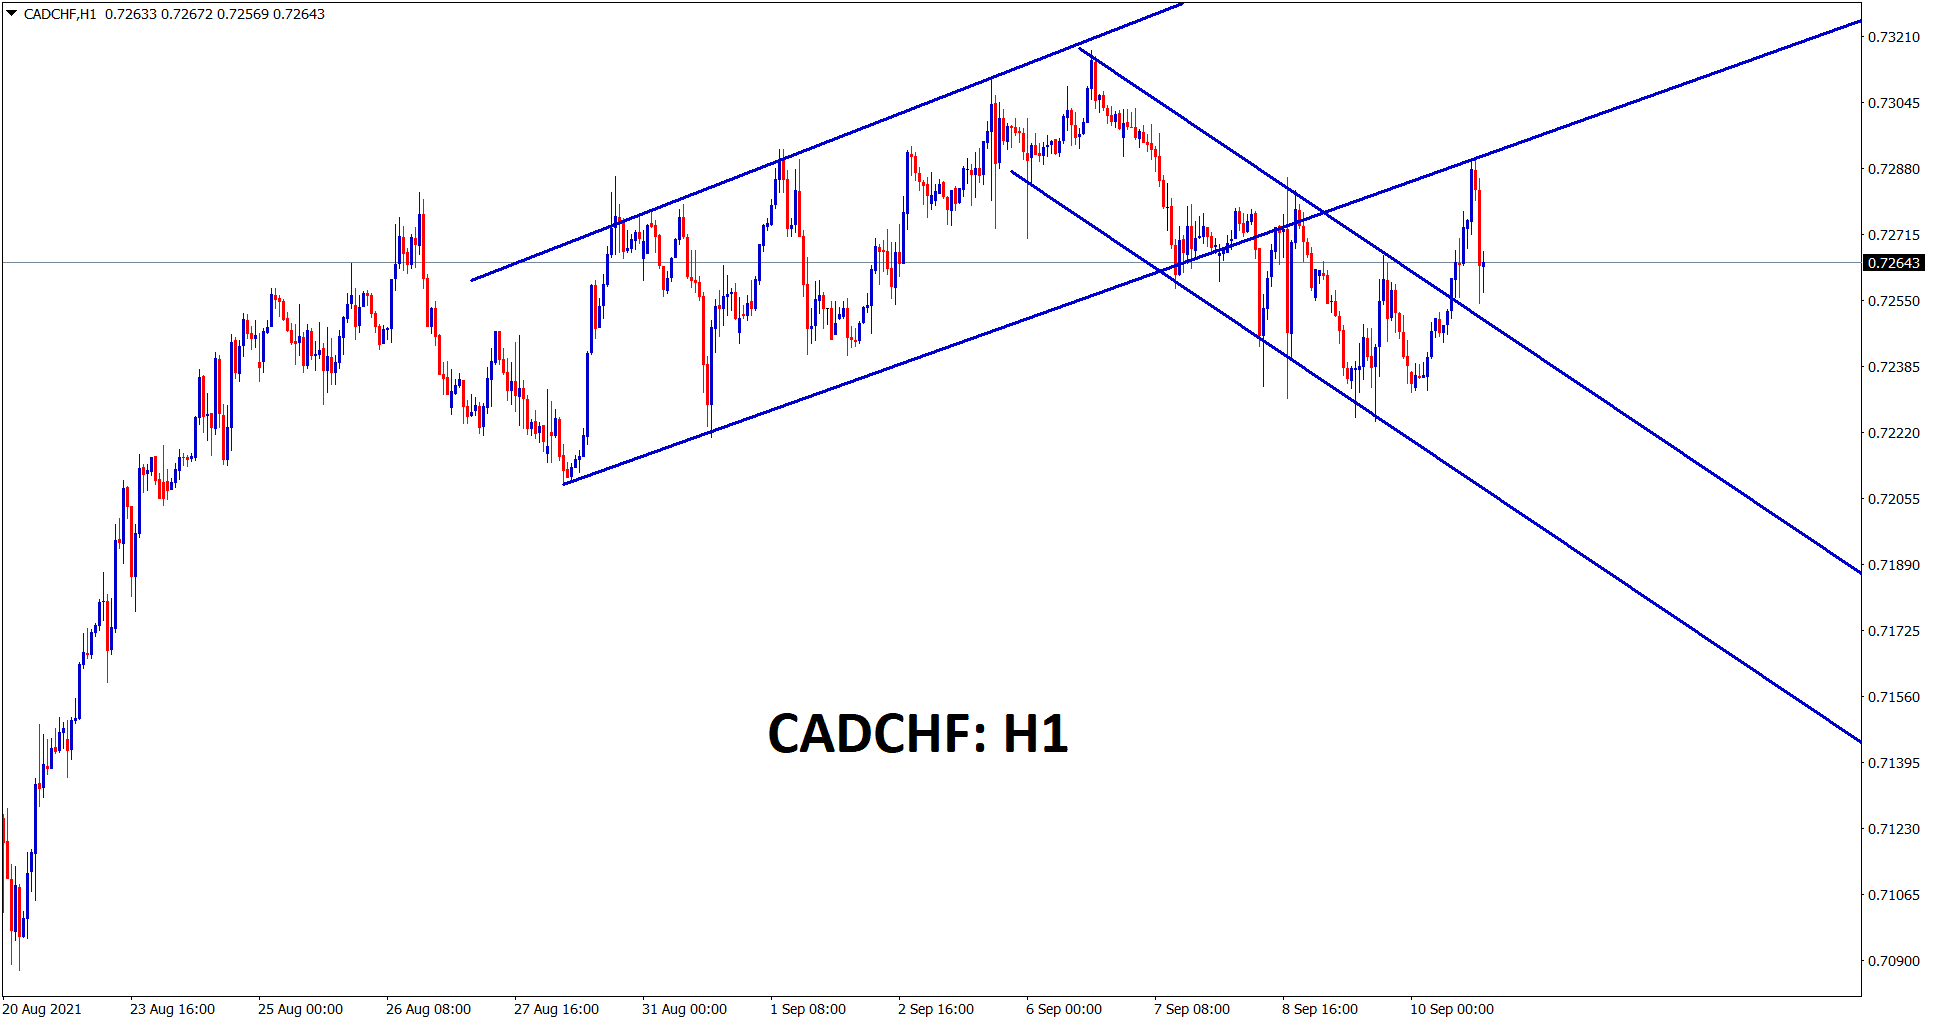 CADCHF has retested the recent channel range